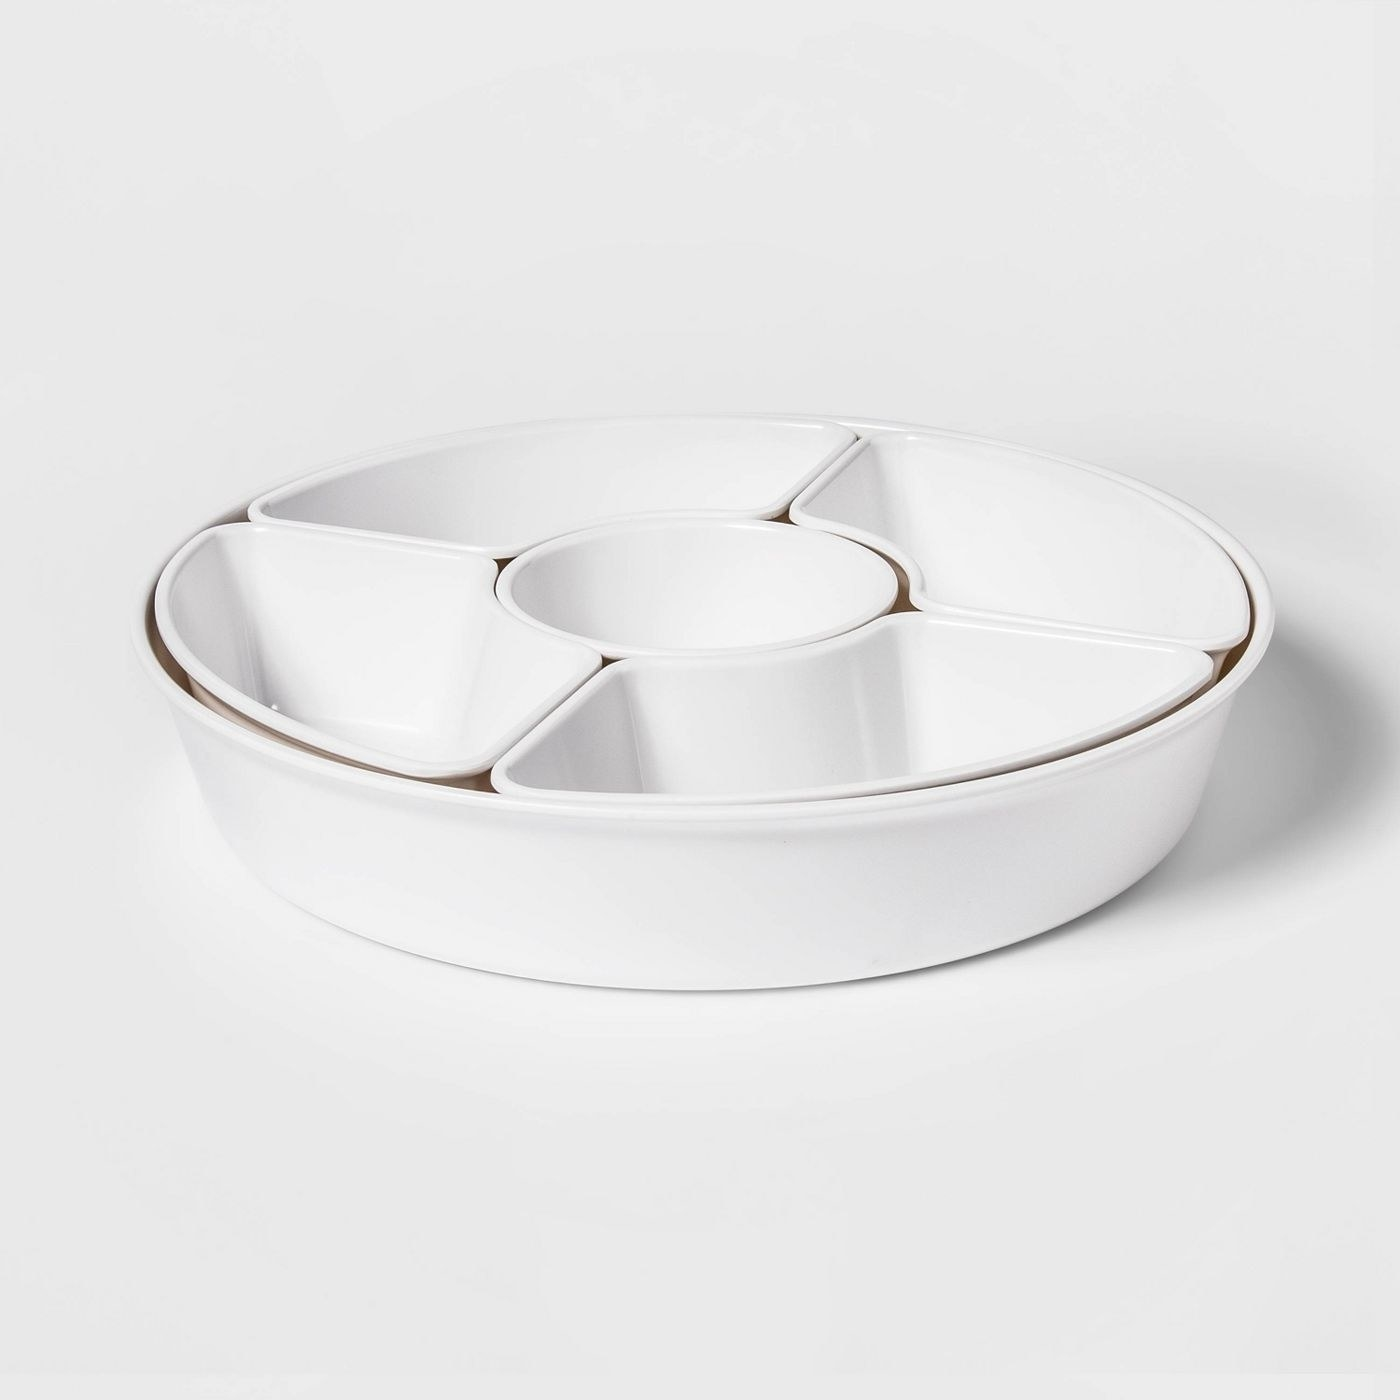 an all white serving platter with five compartments for dips and chips